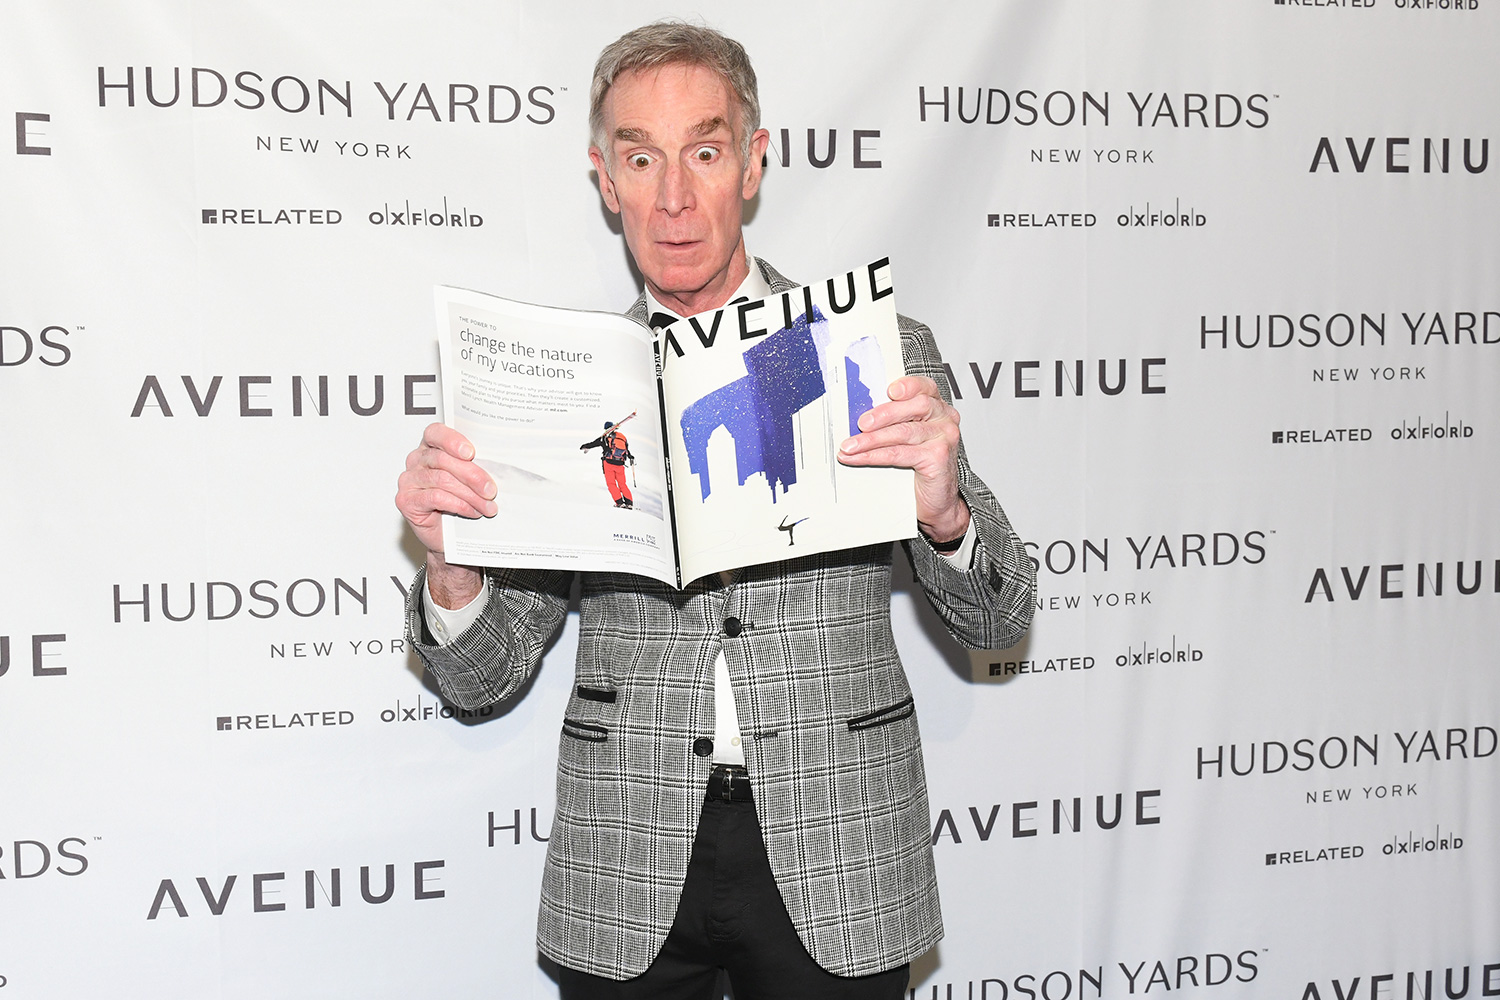 Bill Nye at the AVENUE Magazine Relaunch Event 35 Hudson Yards, NYC 01/22/2020